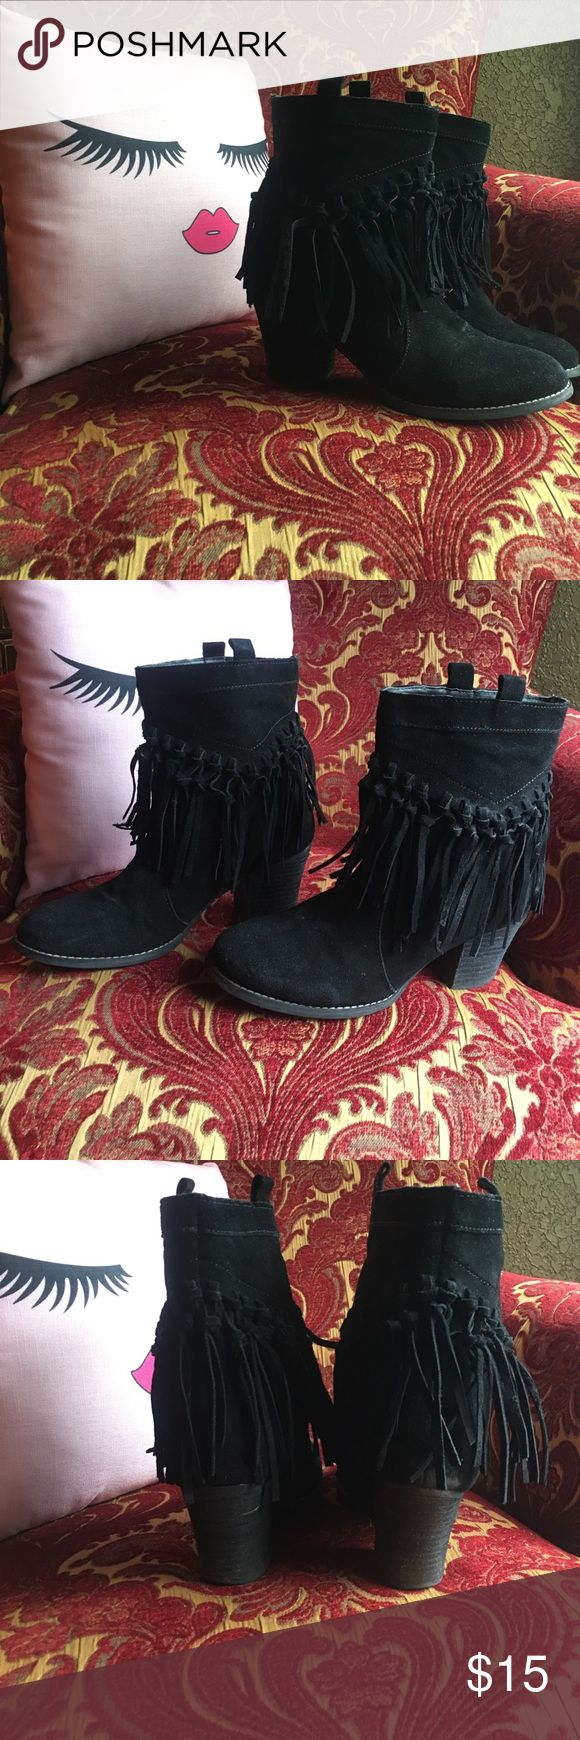 🌷ADORABLE fringe ankle boots Worn a handful of times in great condition. Black suede fringe ankle boots very comfortable and stylish. Slicca Shoes Ankle Boots & Booties